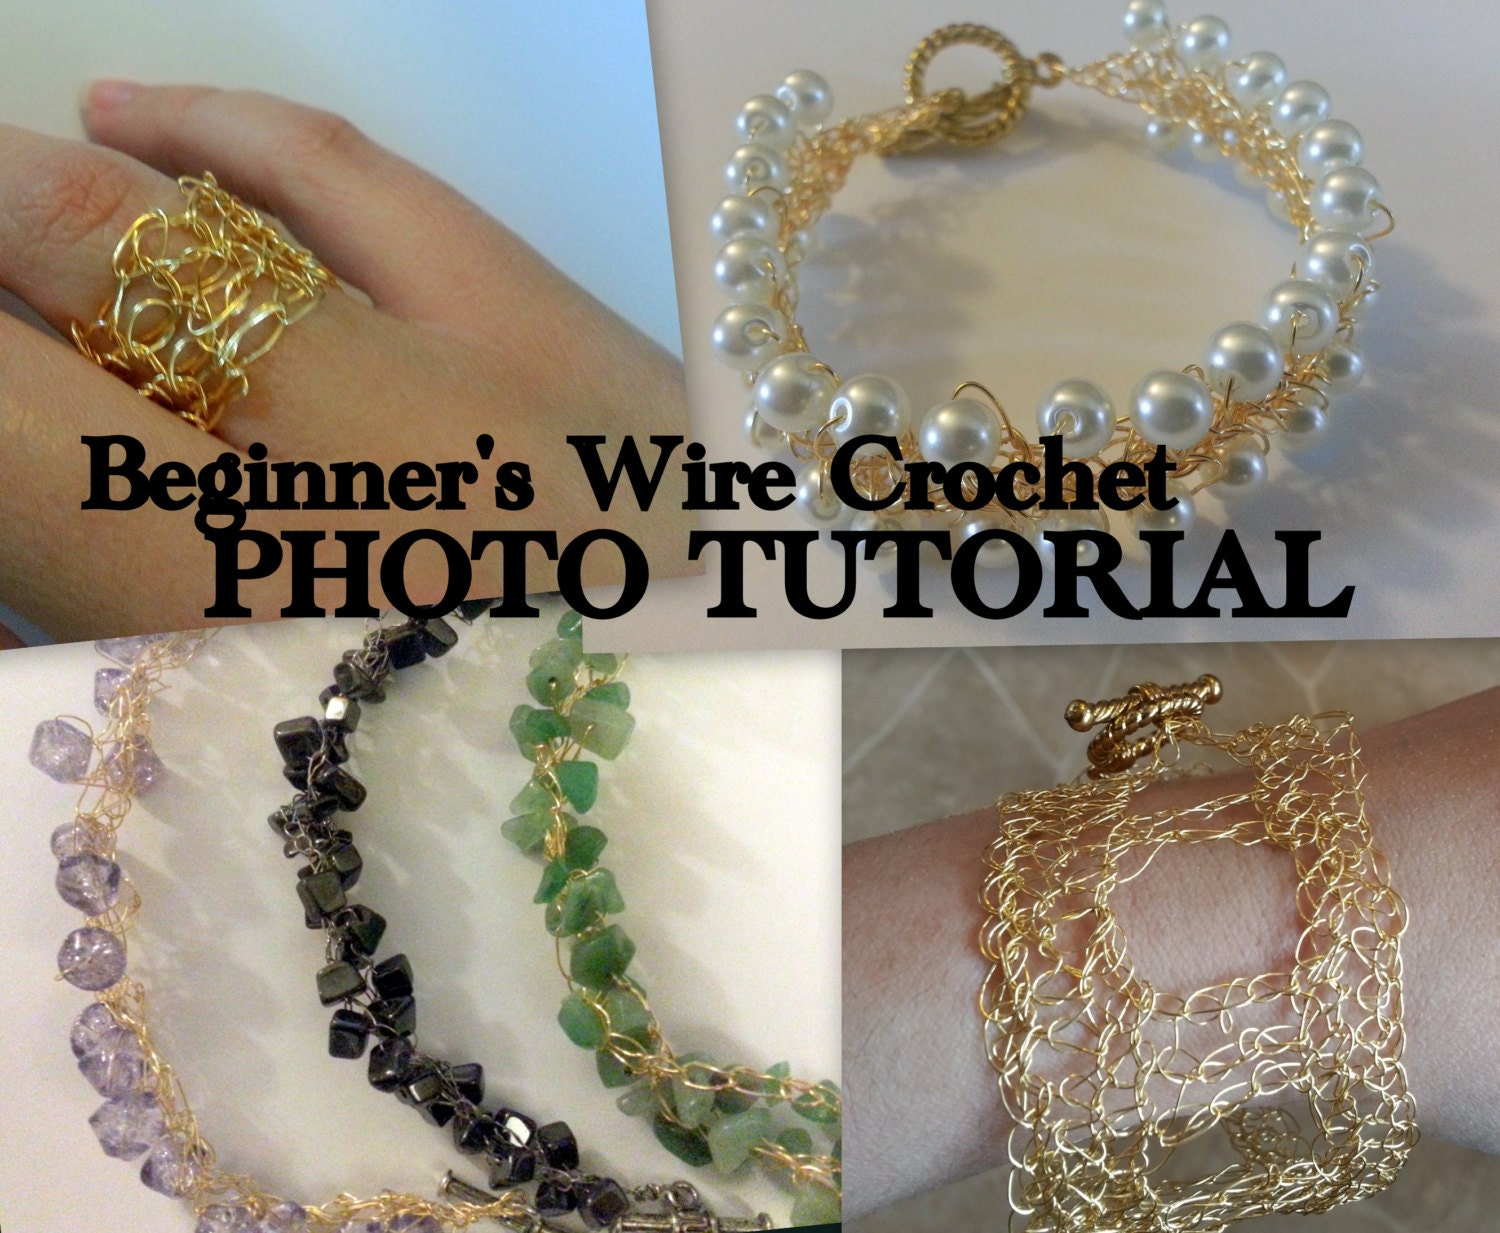 TUTORIAL: Beginners Wire Crochet Photo Tutorial with